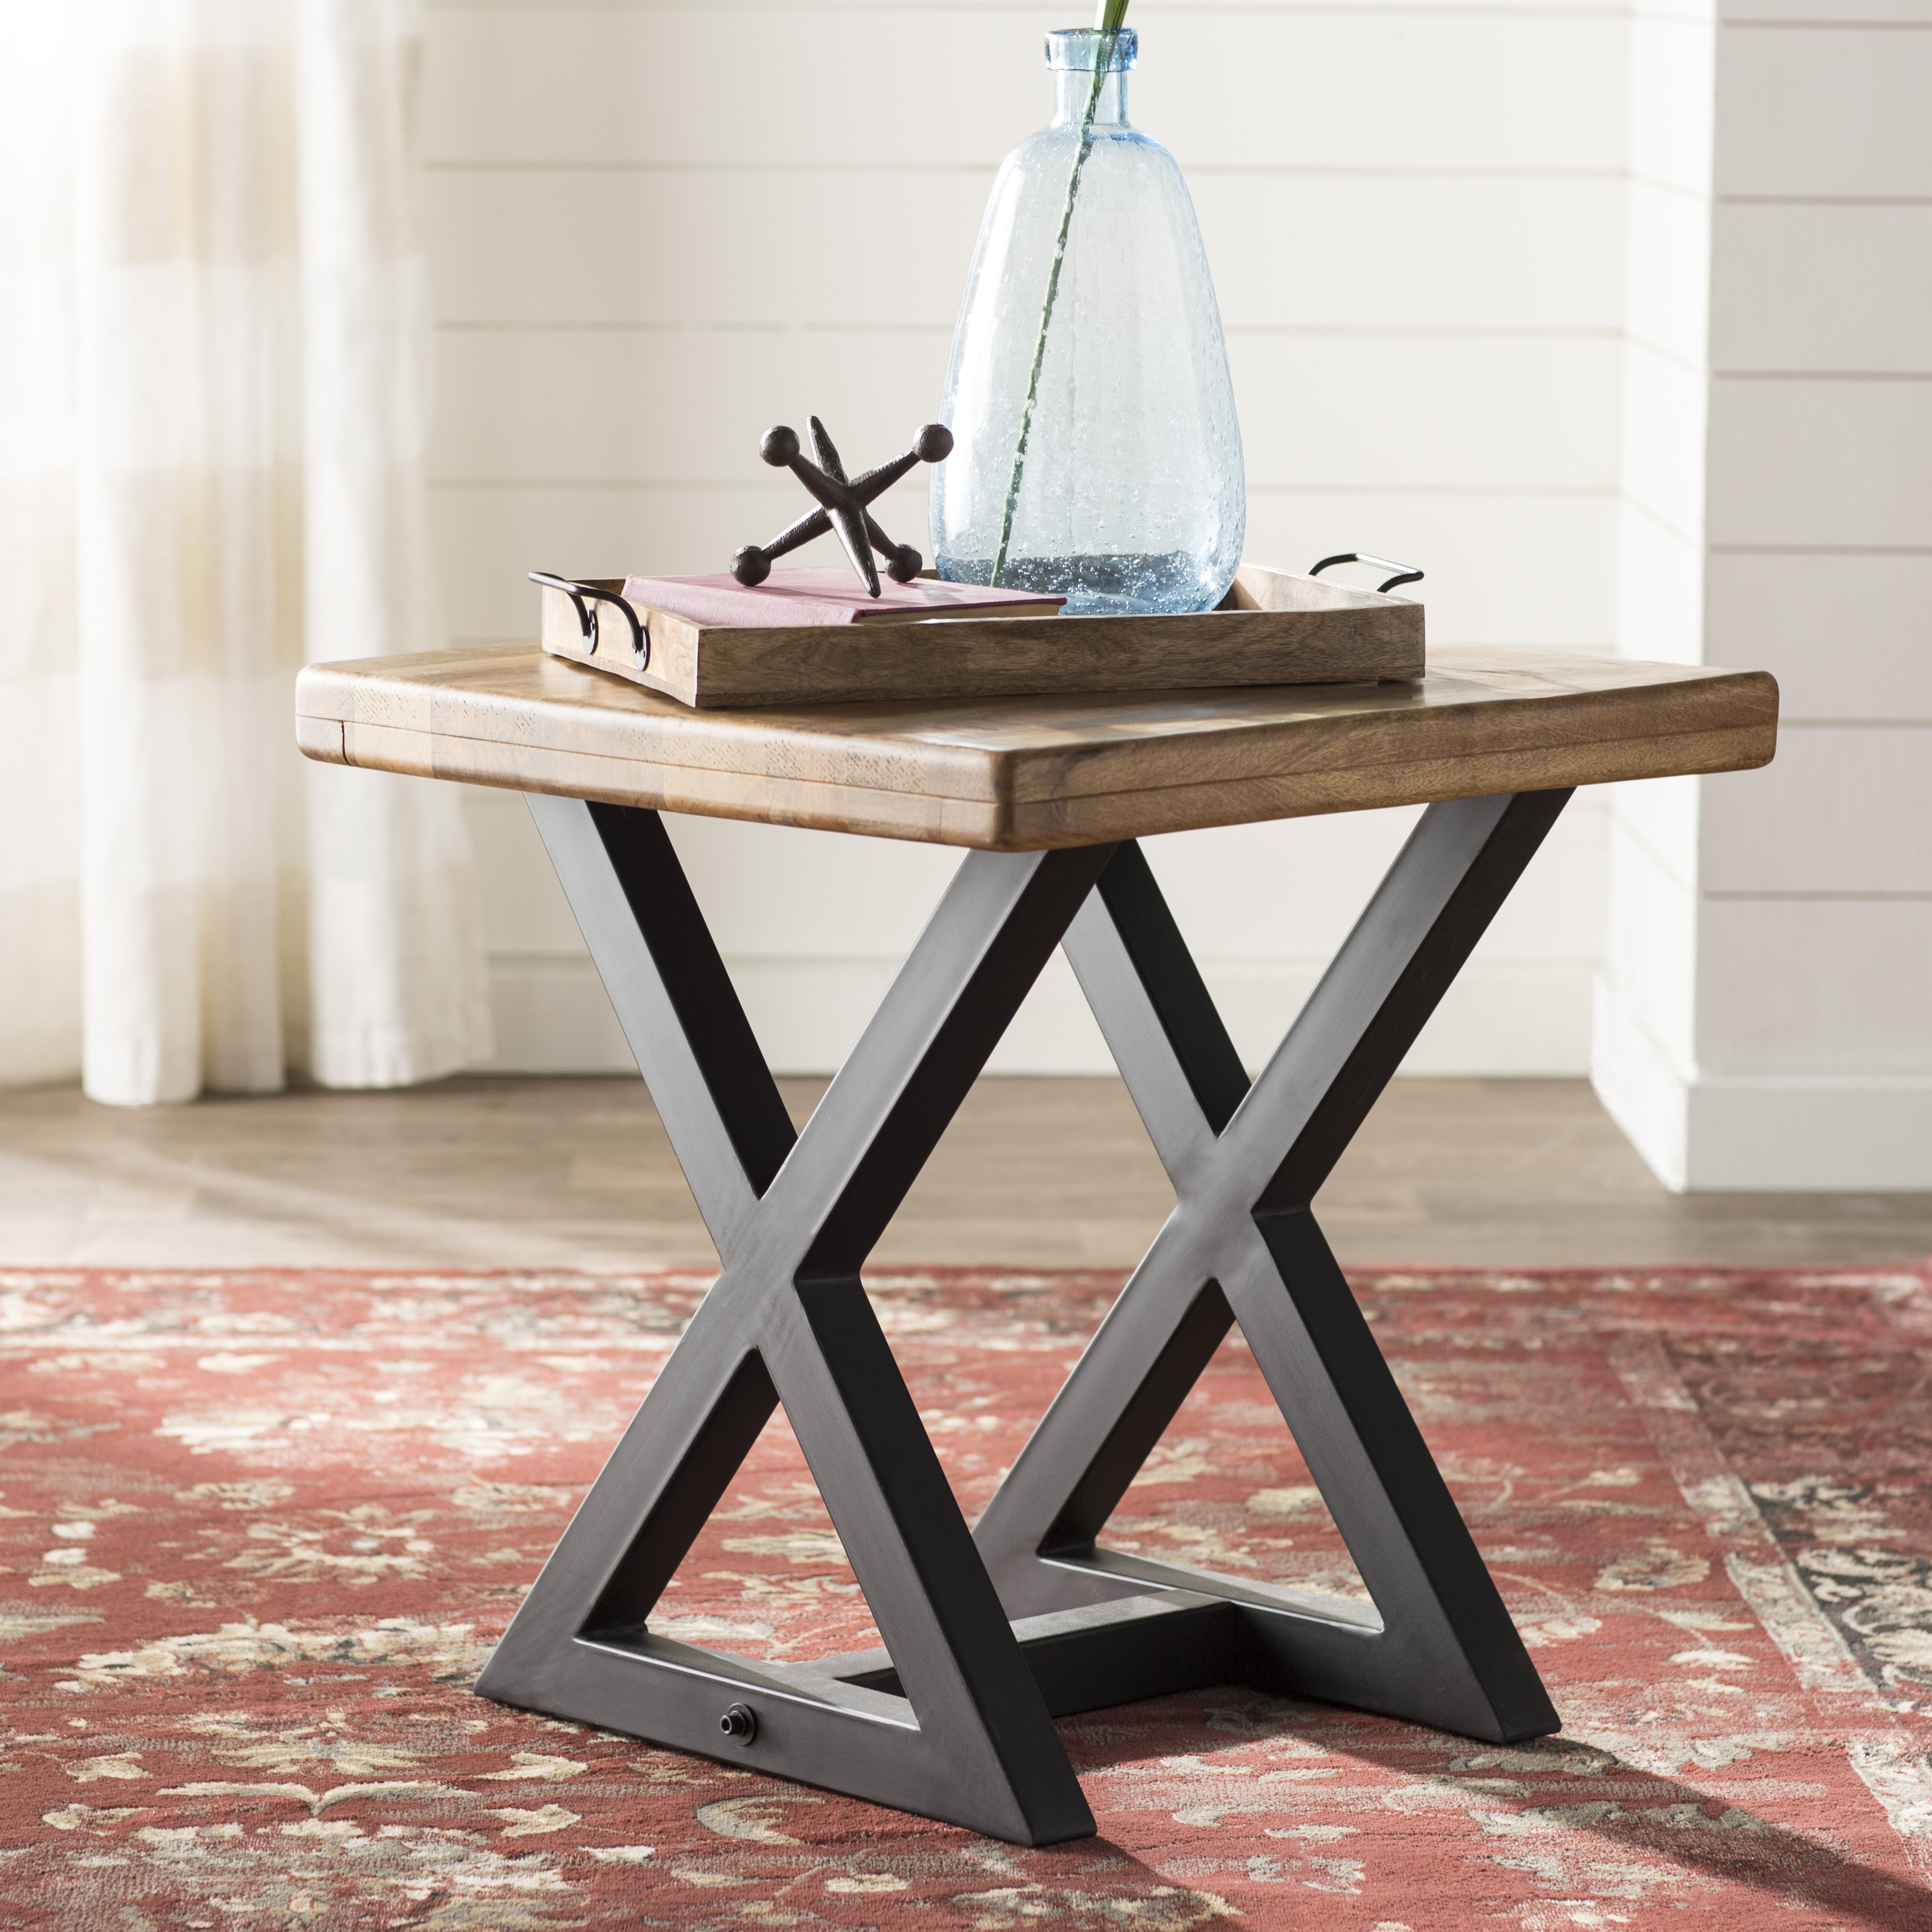 Potomac Adjustable Coffee Tables Throughout Latest Laurel Foundry Modern Farmhouse Hilltop End Table & Reviews (View 13 of 20)